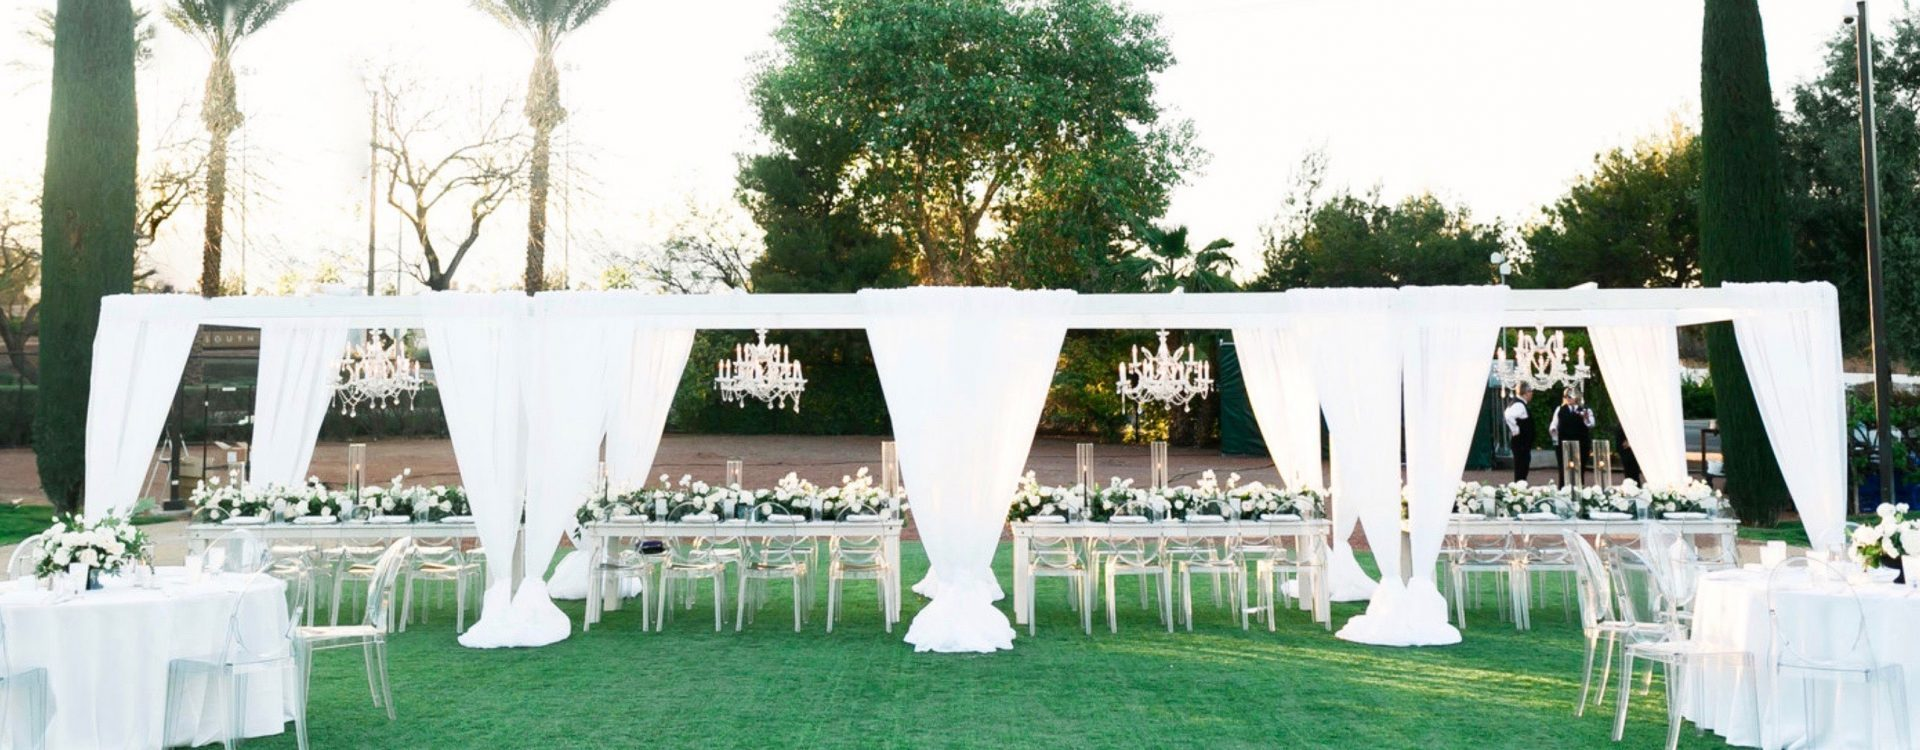 Rsvp Party Rentals Nevada S Largest Event Rental Company